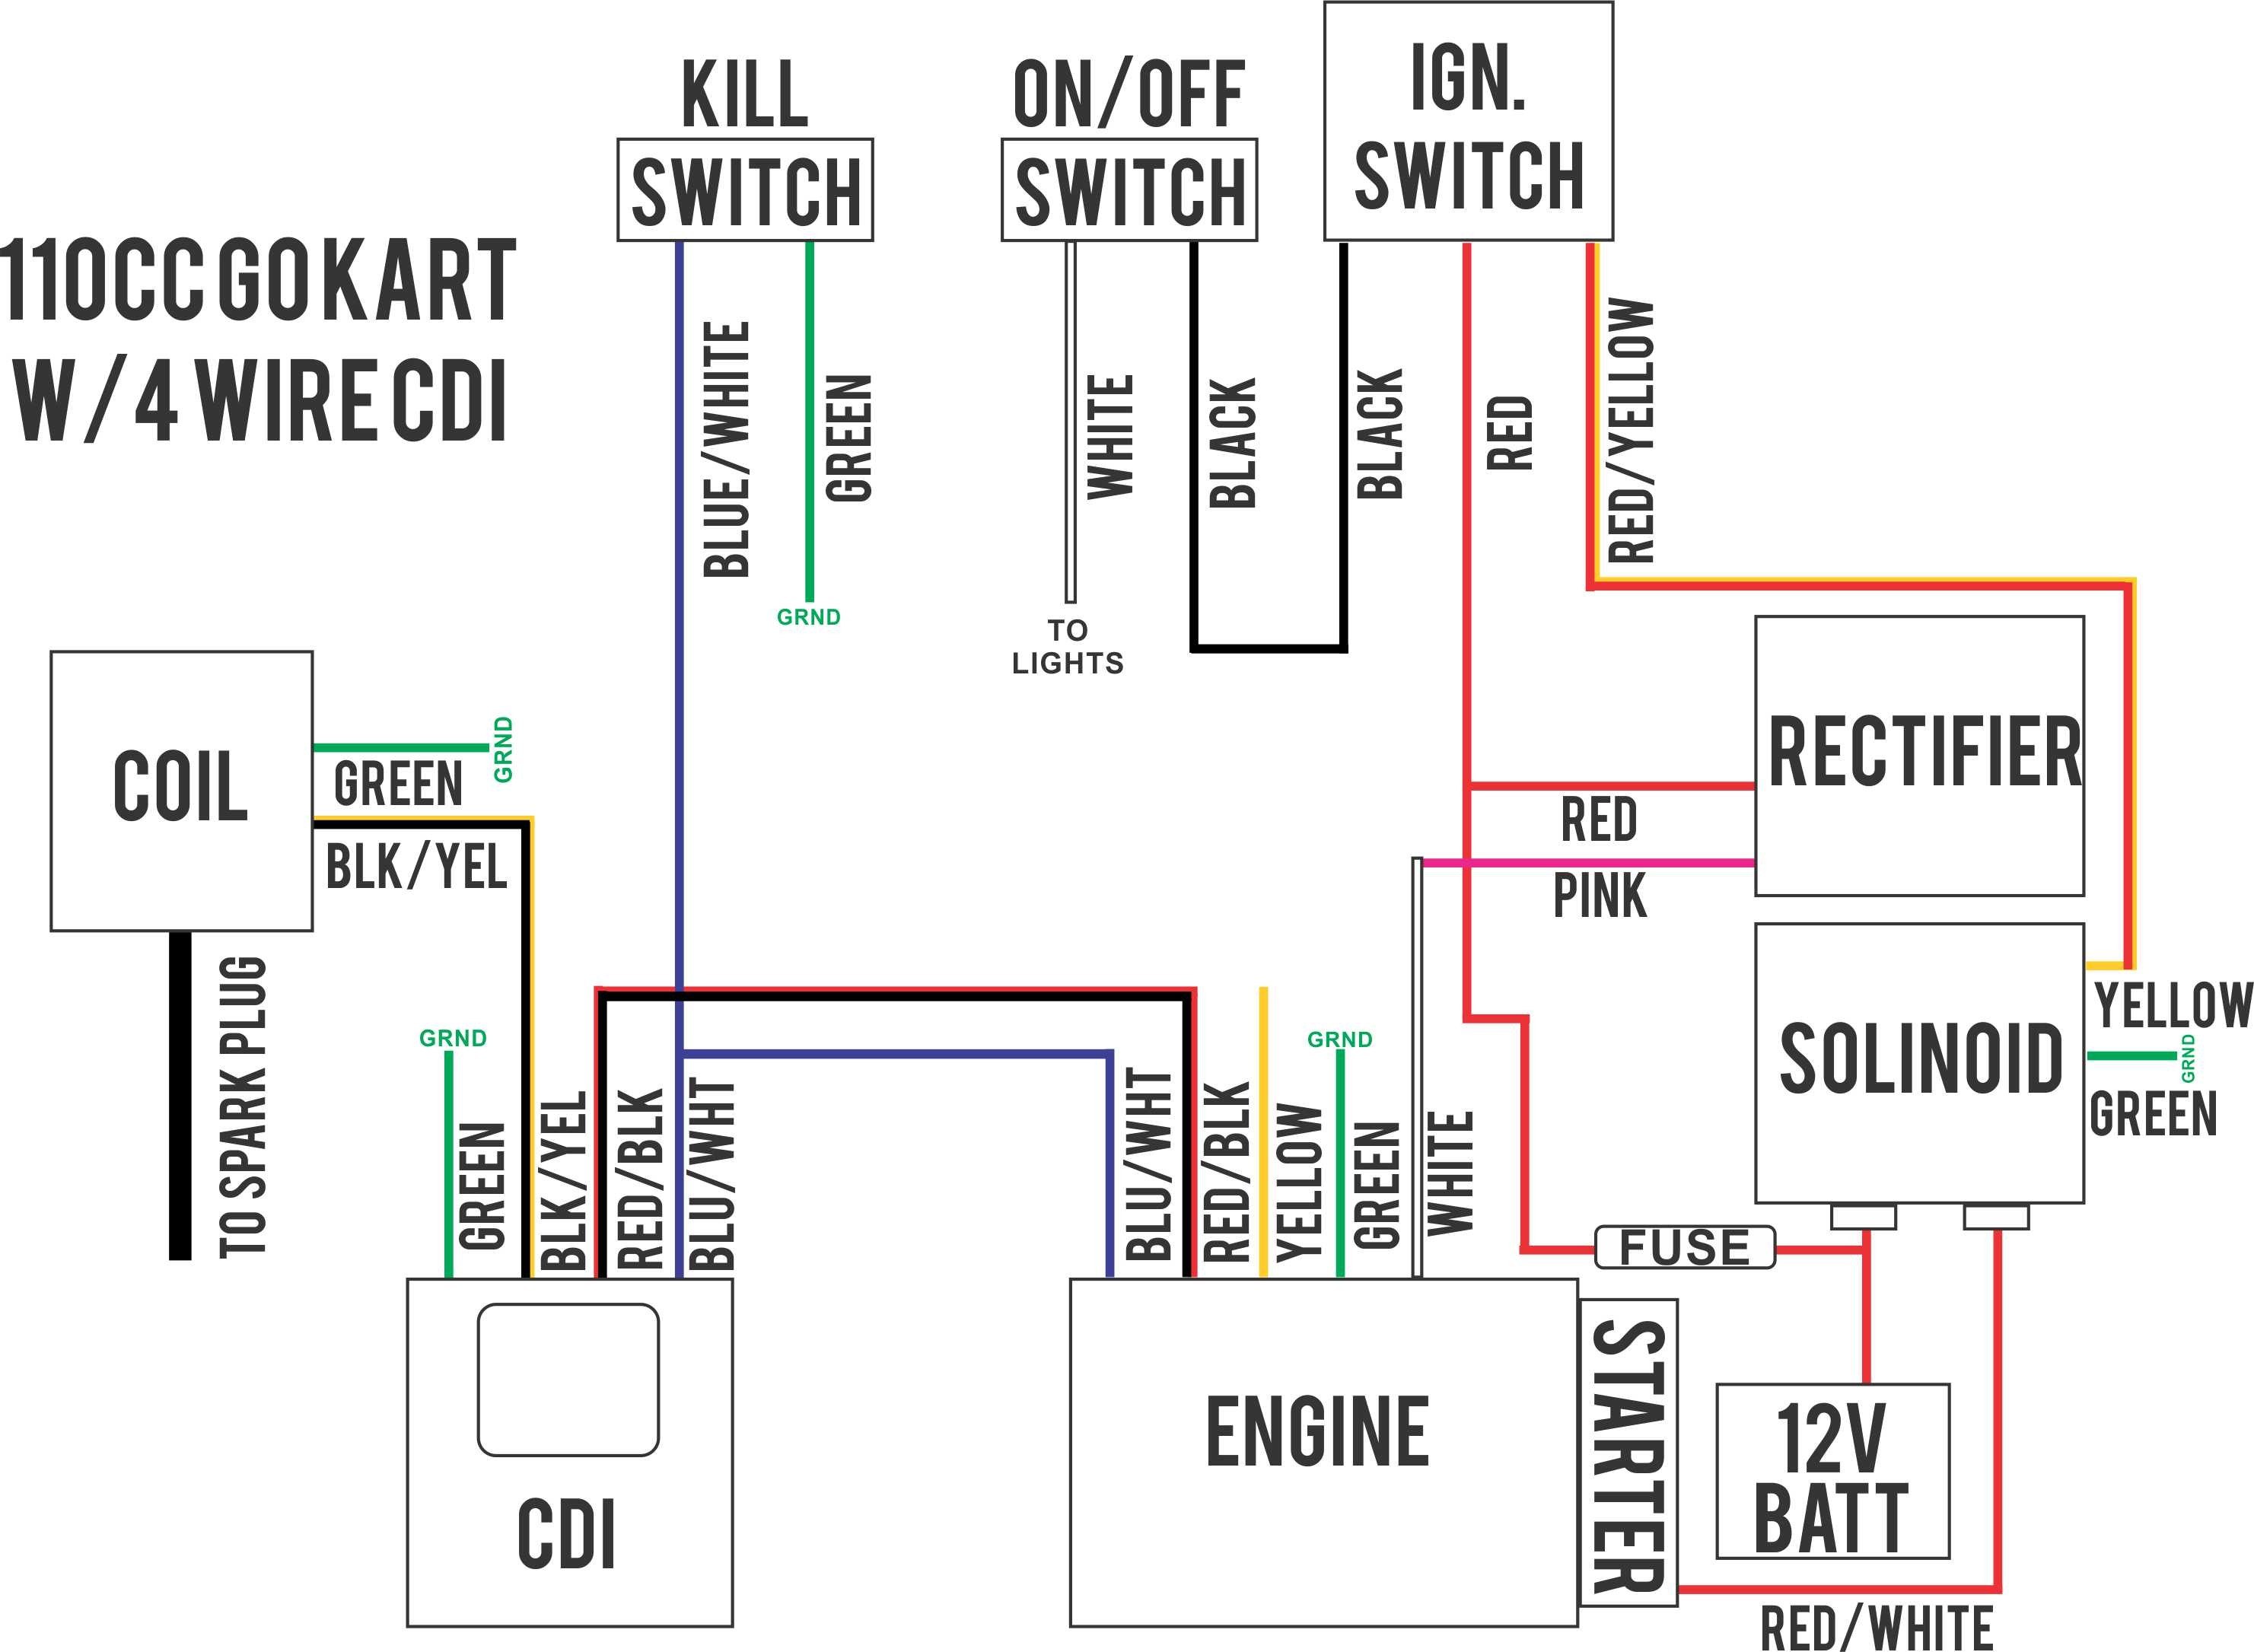 4 Wheeler Wiring Diagram Cutler Hammer Bab Shunt Trip Breaker Five Wire Cdi Blog About Diagrams Rh Clares Driving Co Uk China Winch